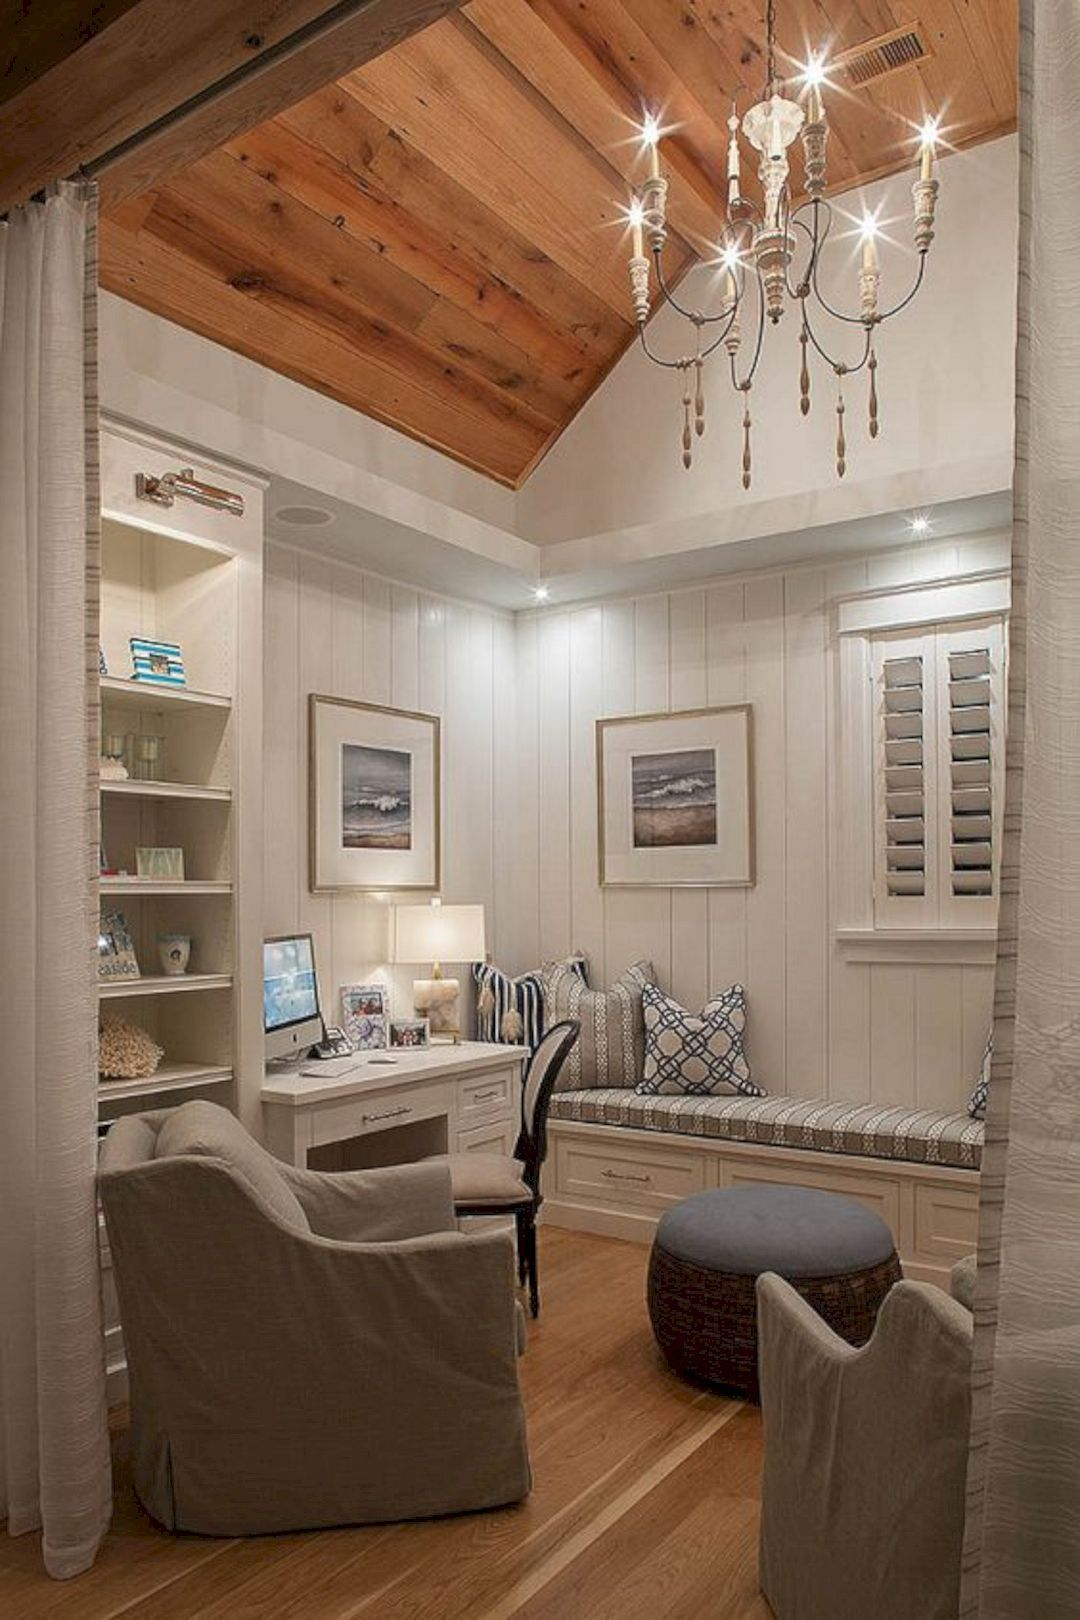 16 Small Cottage Interior Design Ideas | Office Design | Home office ...